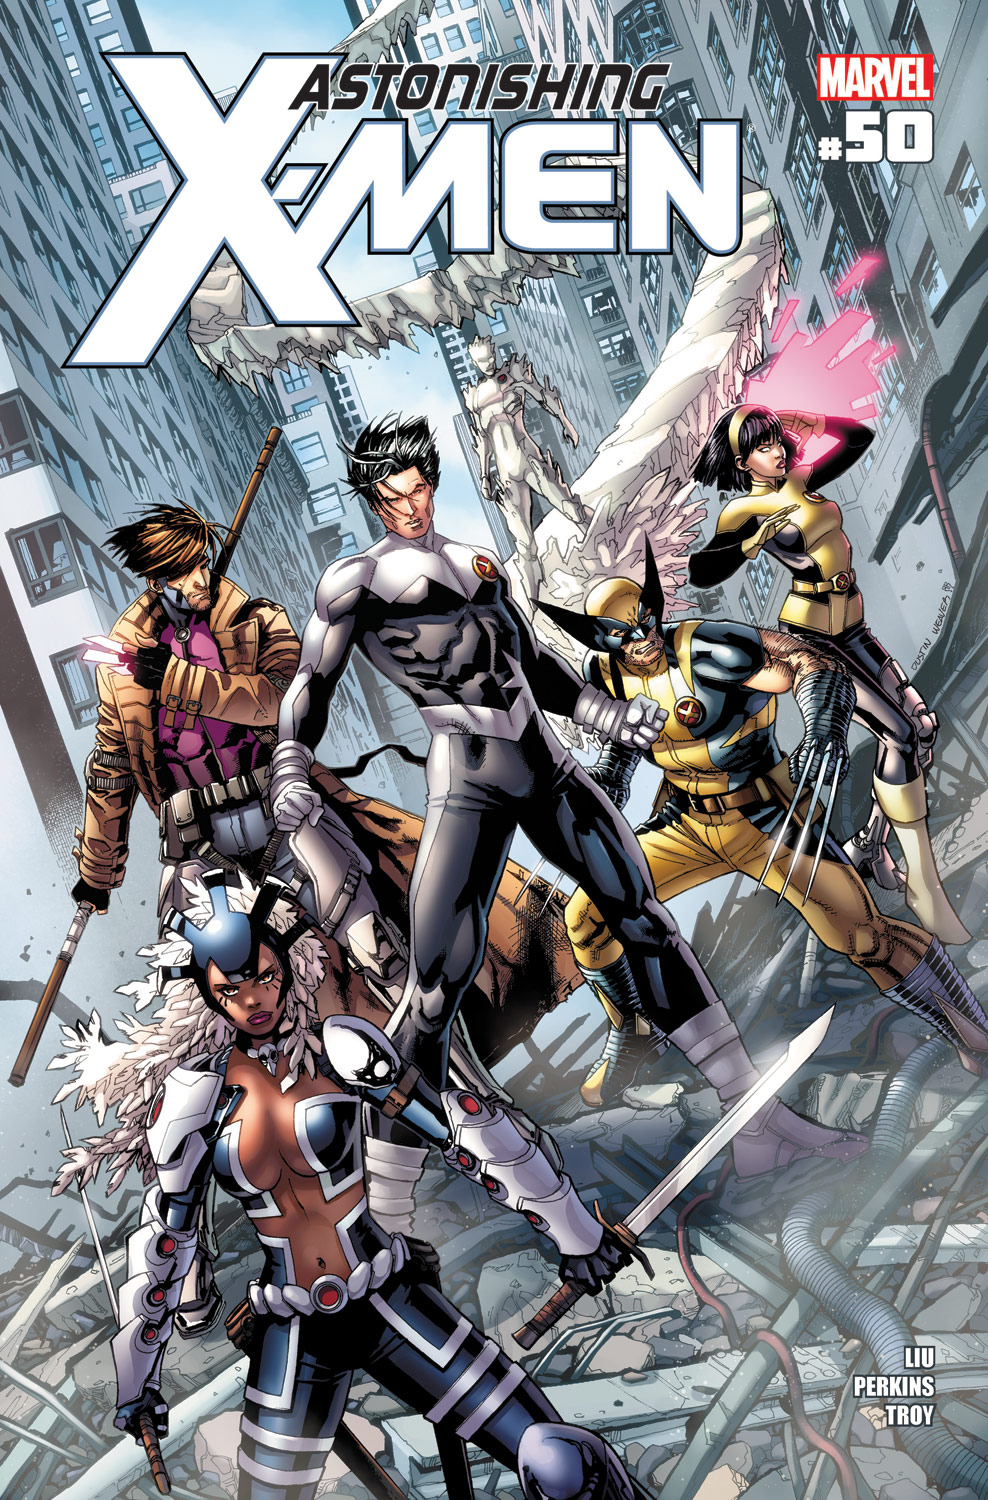 Astonishing X-Men (2004) #50